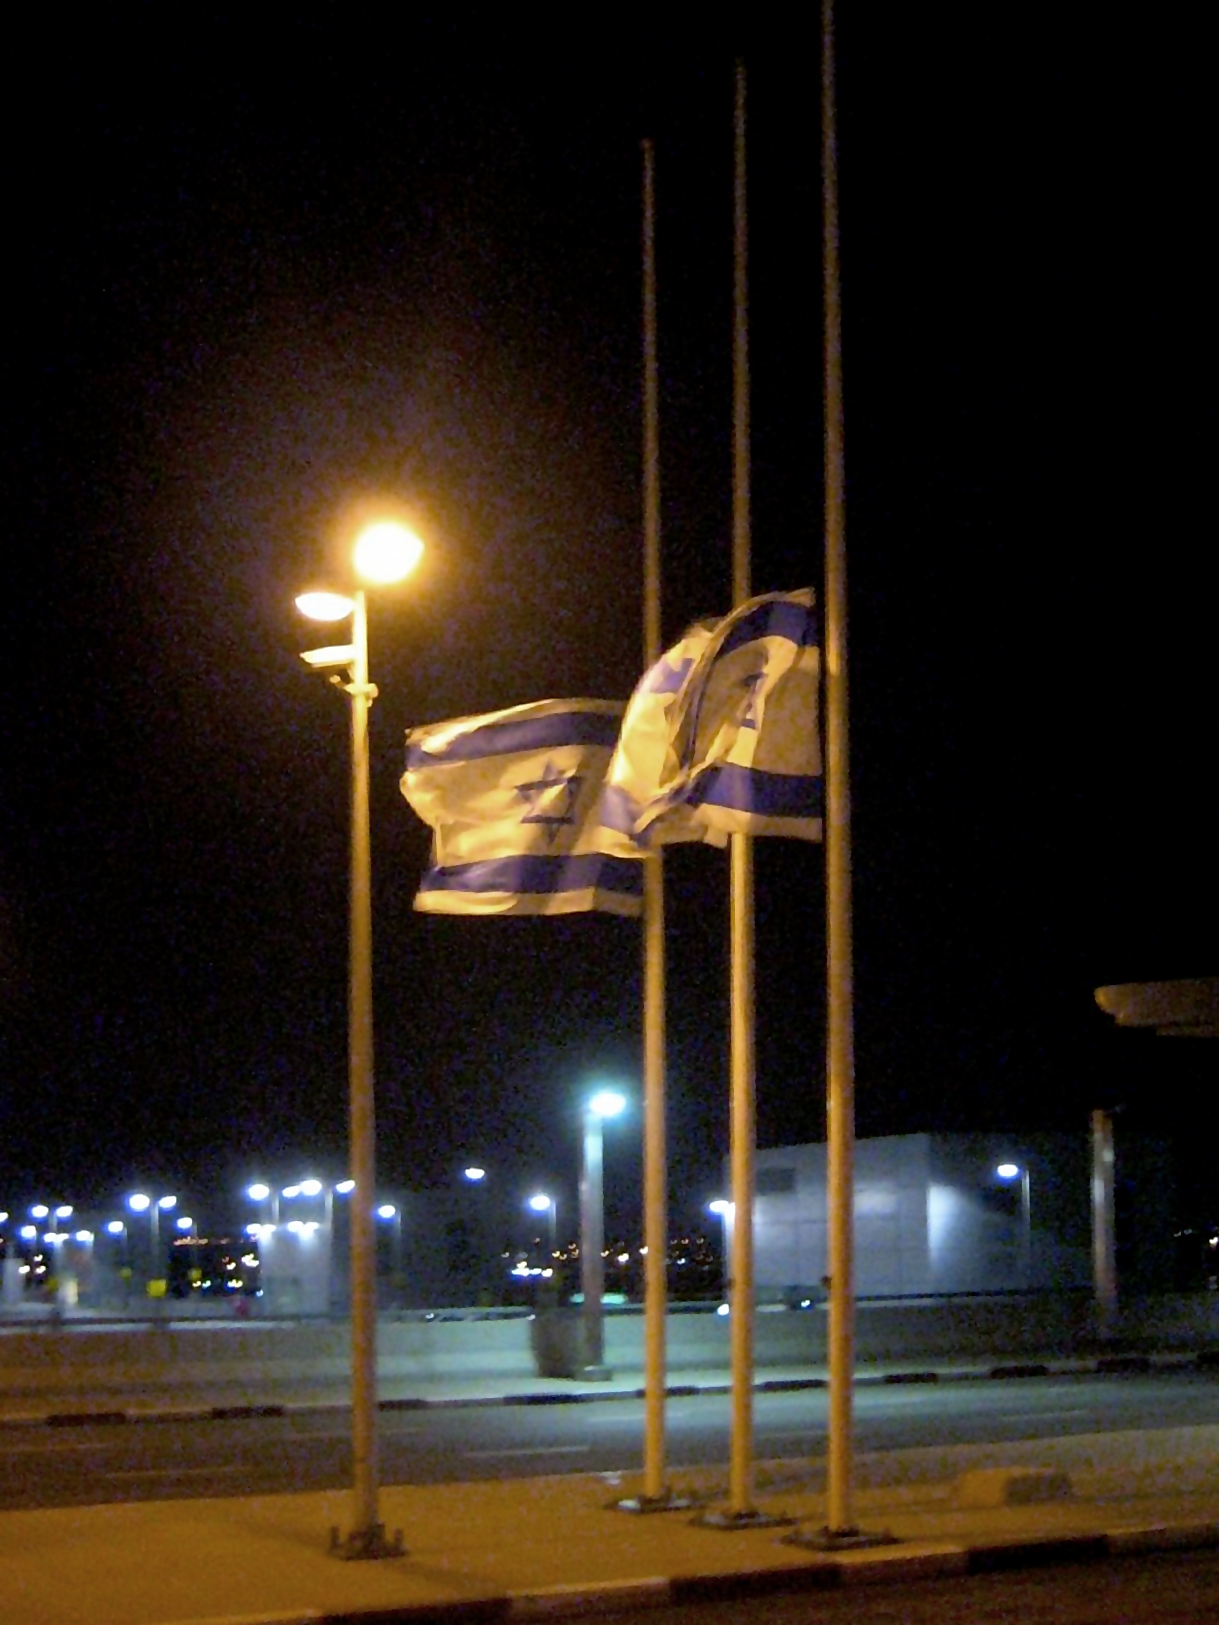 By joe goldberg from Seattle, WA, USA (Half Mast) [CC-BY-SA-2.0 (http://creativecommons.org/licenses/by-sa/2.0)], via Wikimedia Commons